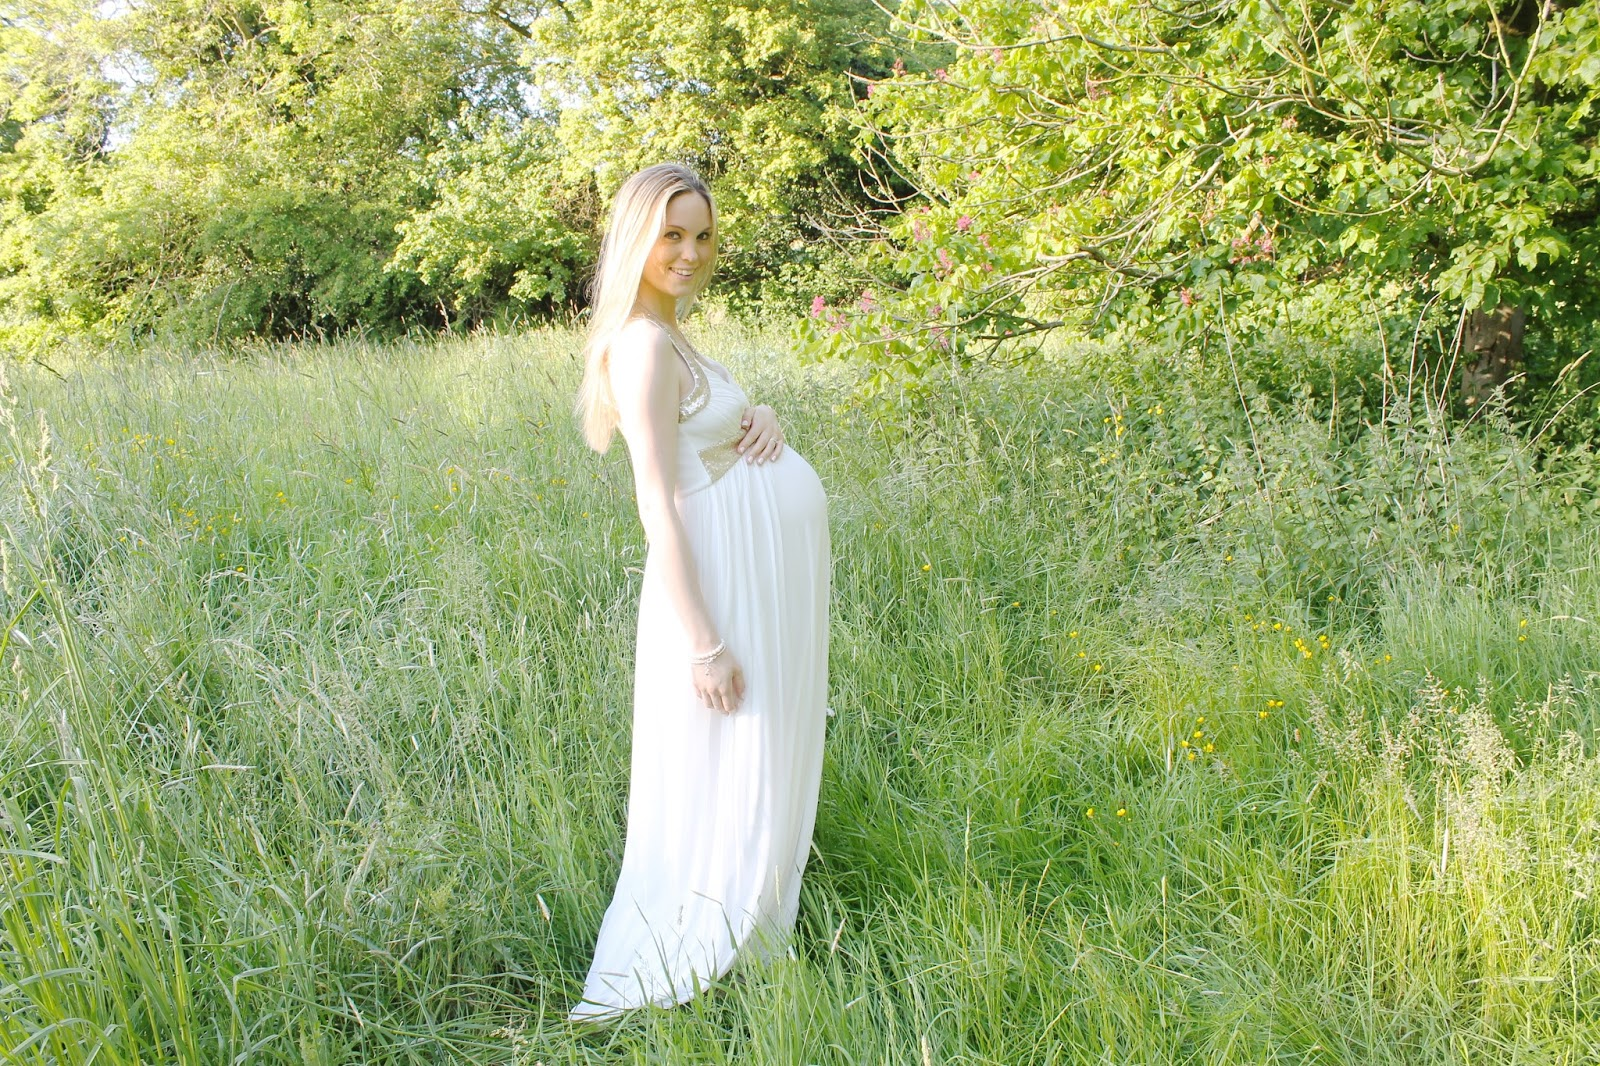 DIY Maternity Photographs, Maternity photos, Maternity photoshoot, 38 week bump, Maternity photos at 38 weeks